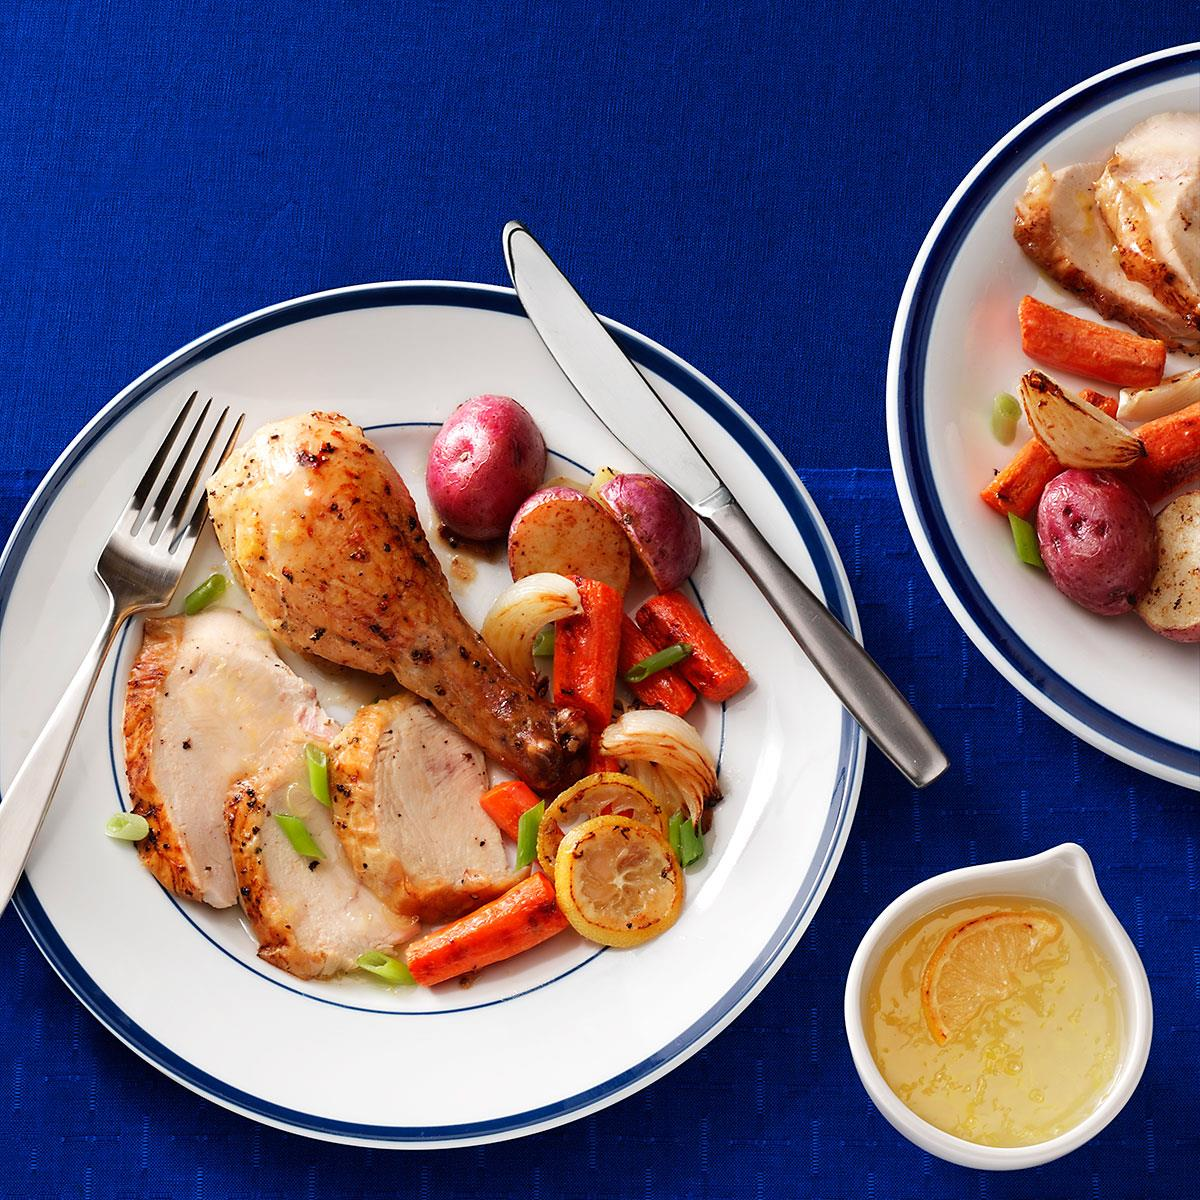 Roasted Chicken with Lemon Sauce